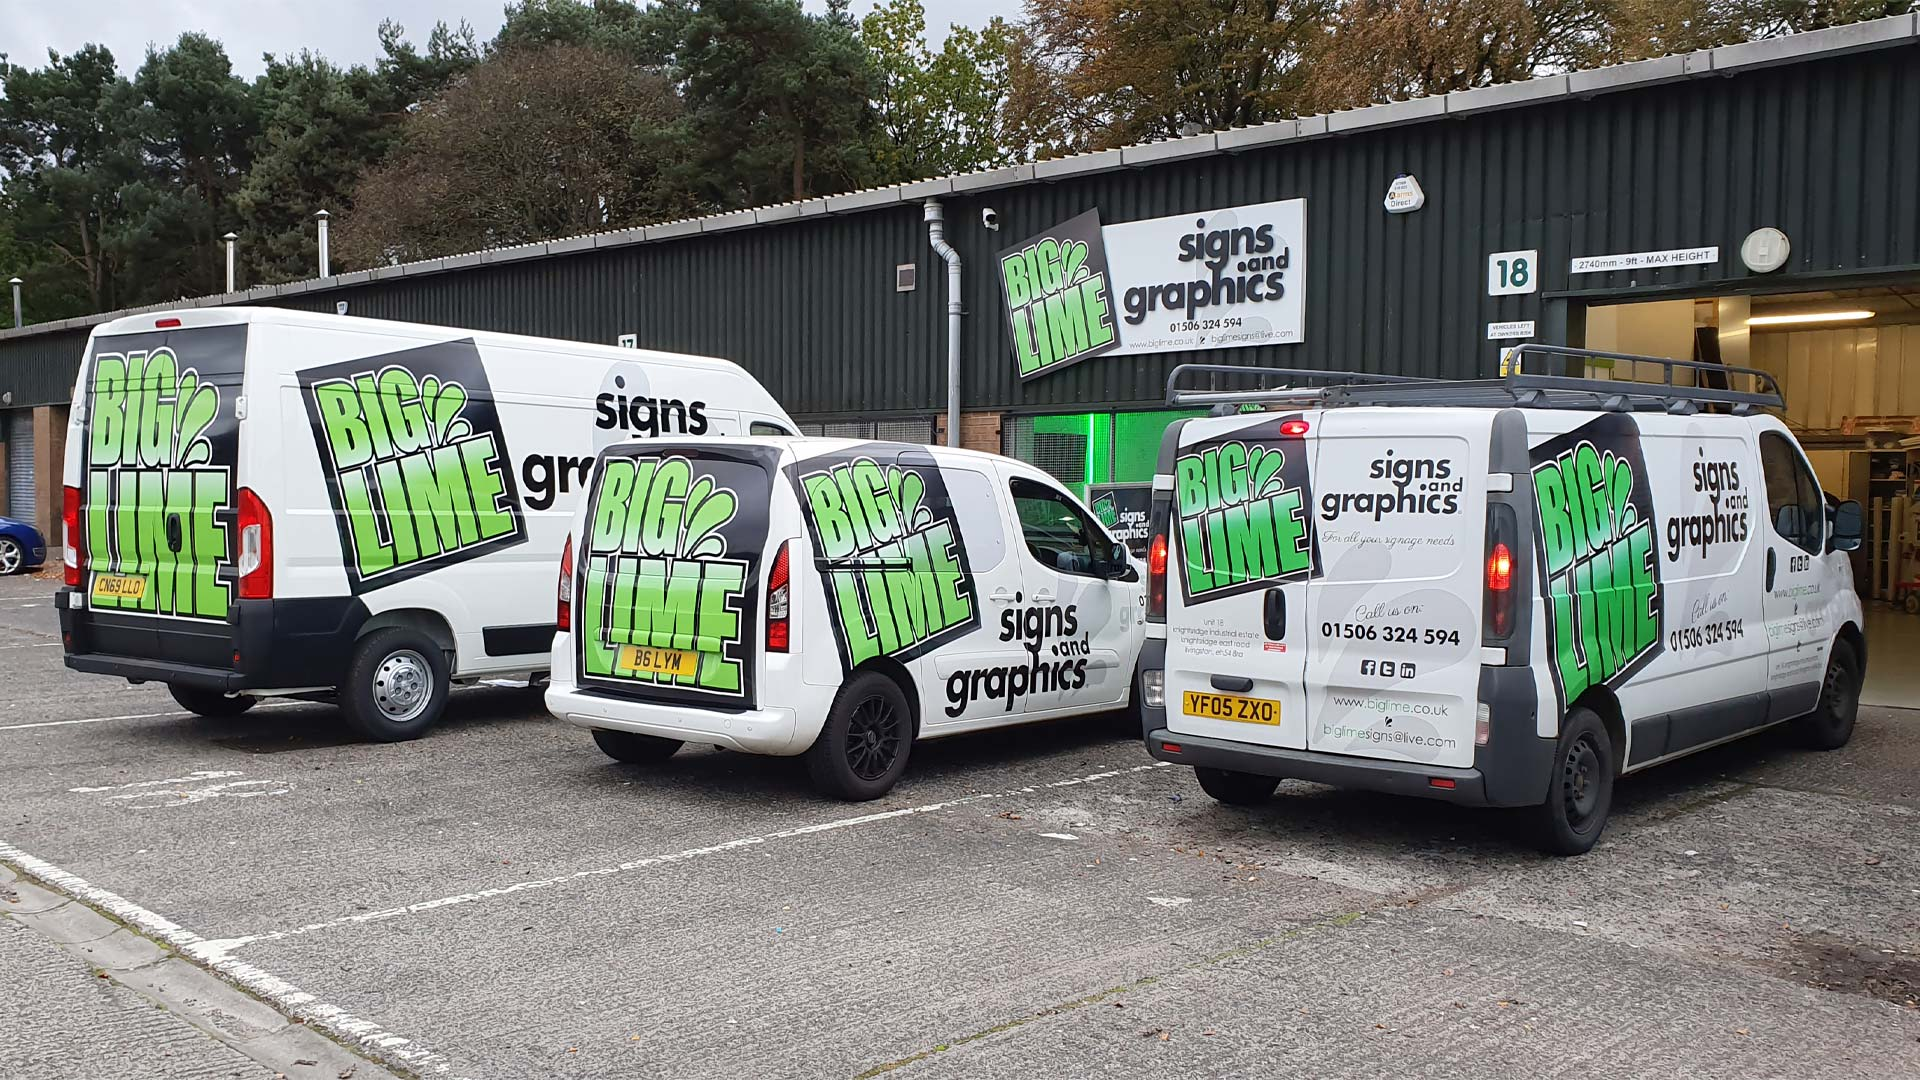 Big Lime Signs & Graphics